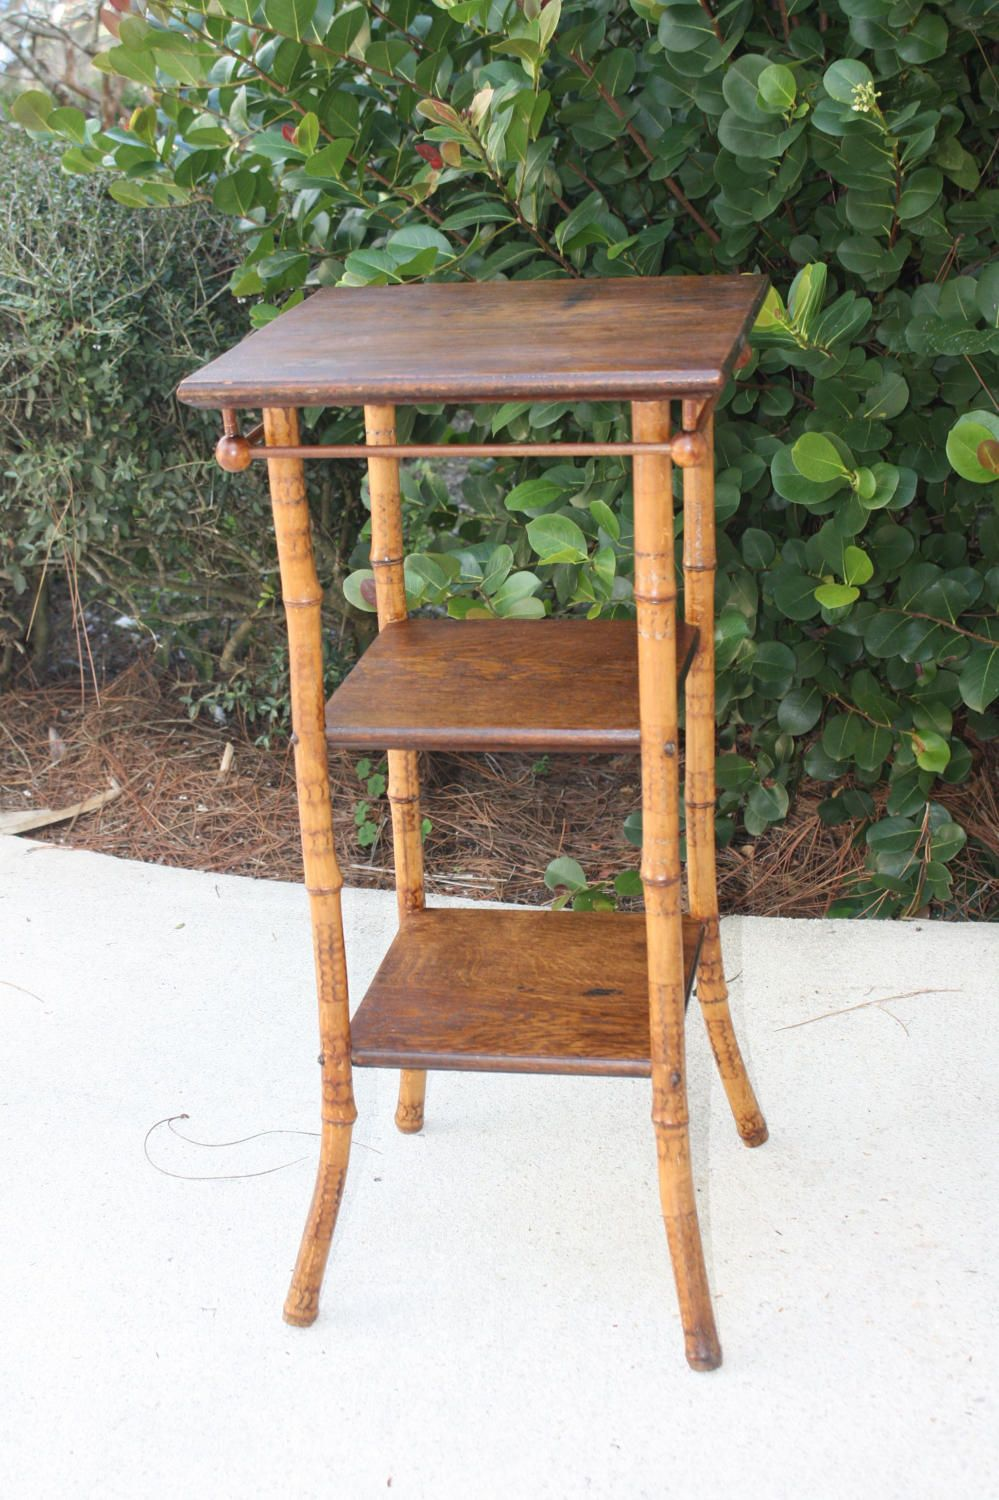 Vintage Wood And Rattan 3 Tier Table Small Rattan Table Square Wooden Side Table Vintage Wood Wooden Side Table Square Tables